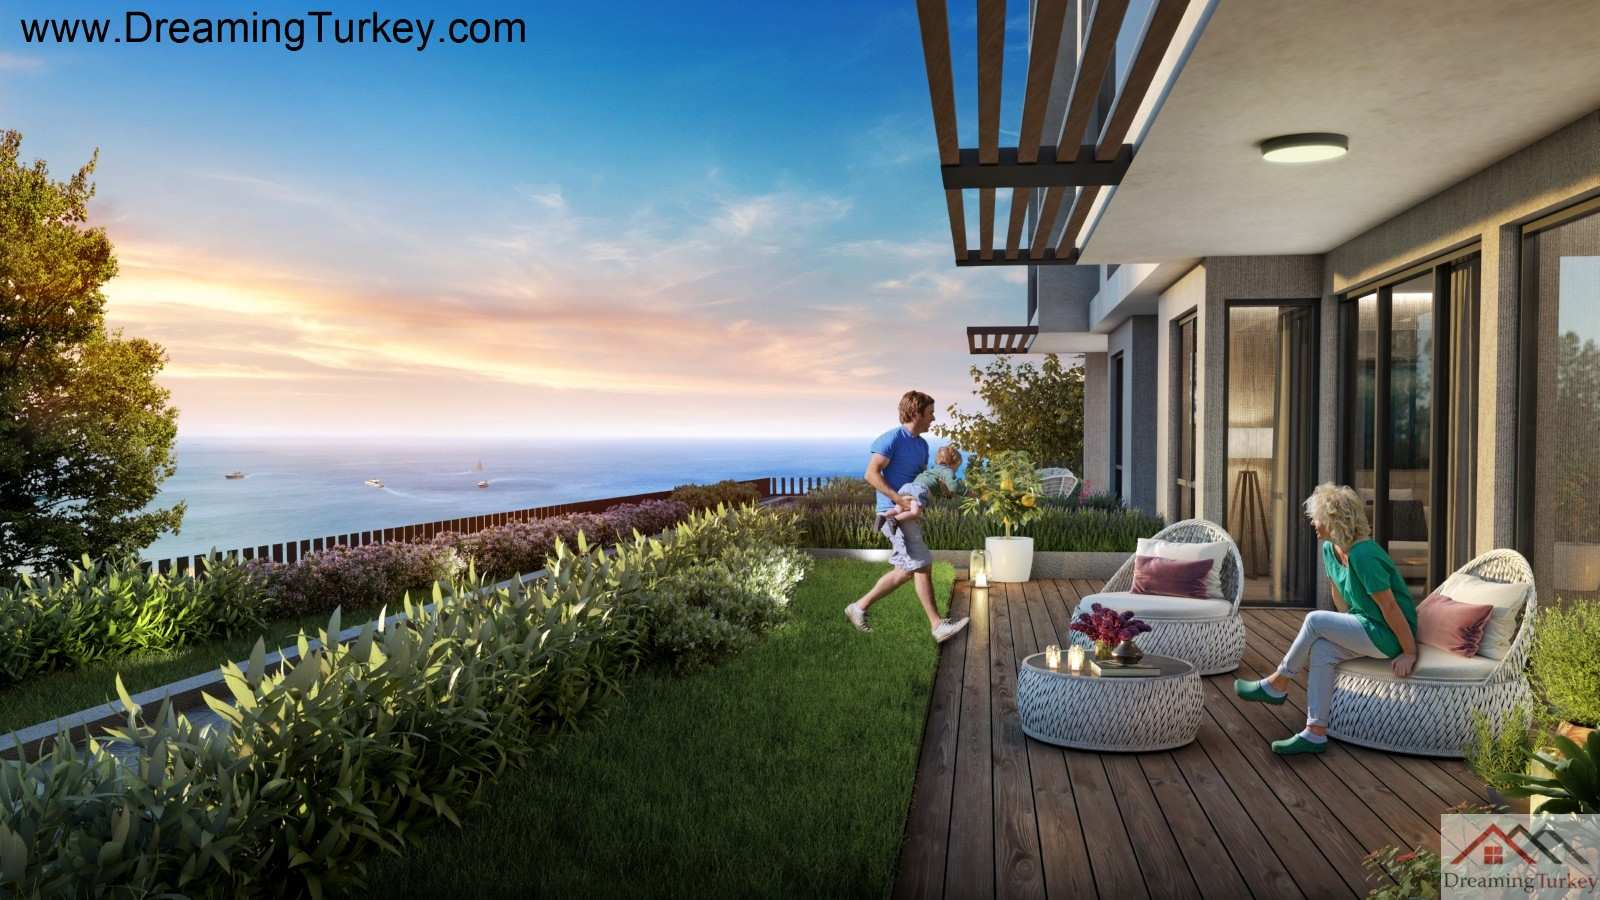 4-Bedroom Duplex with a Yard in a Complex Close to the Sea in Istanbul